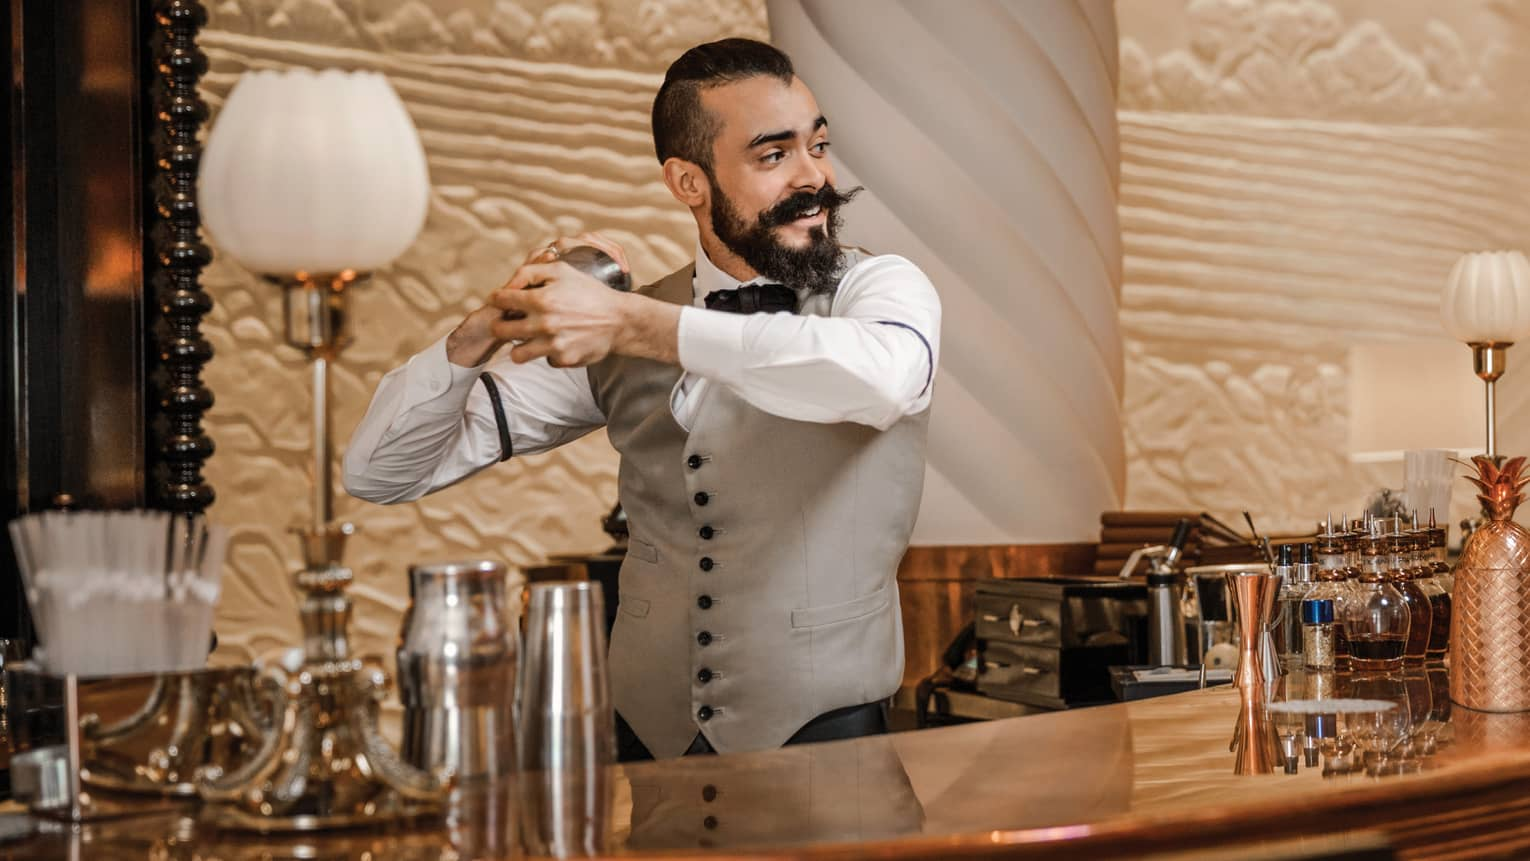 Mixologist with beard and waxed mustache, vest shakes cocktail behind bar